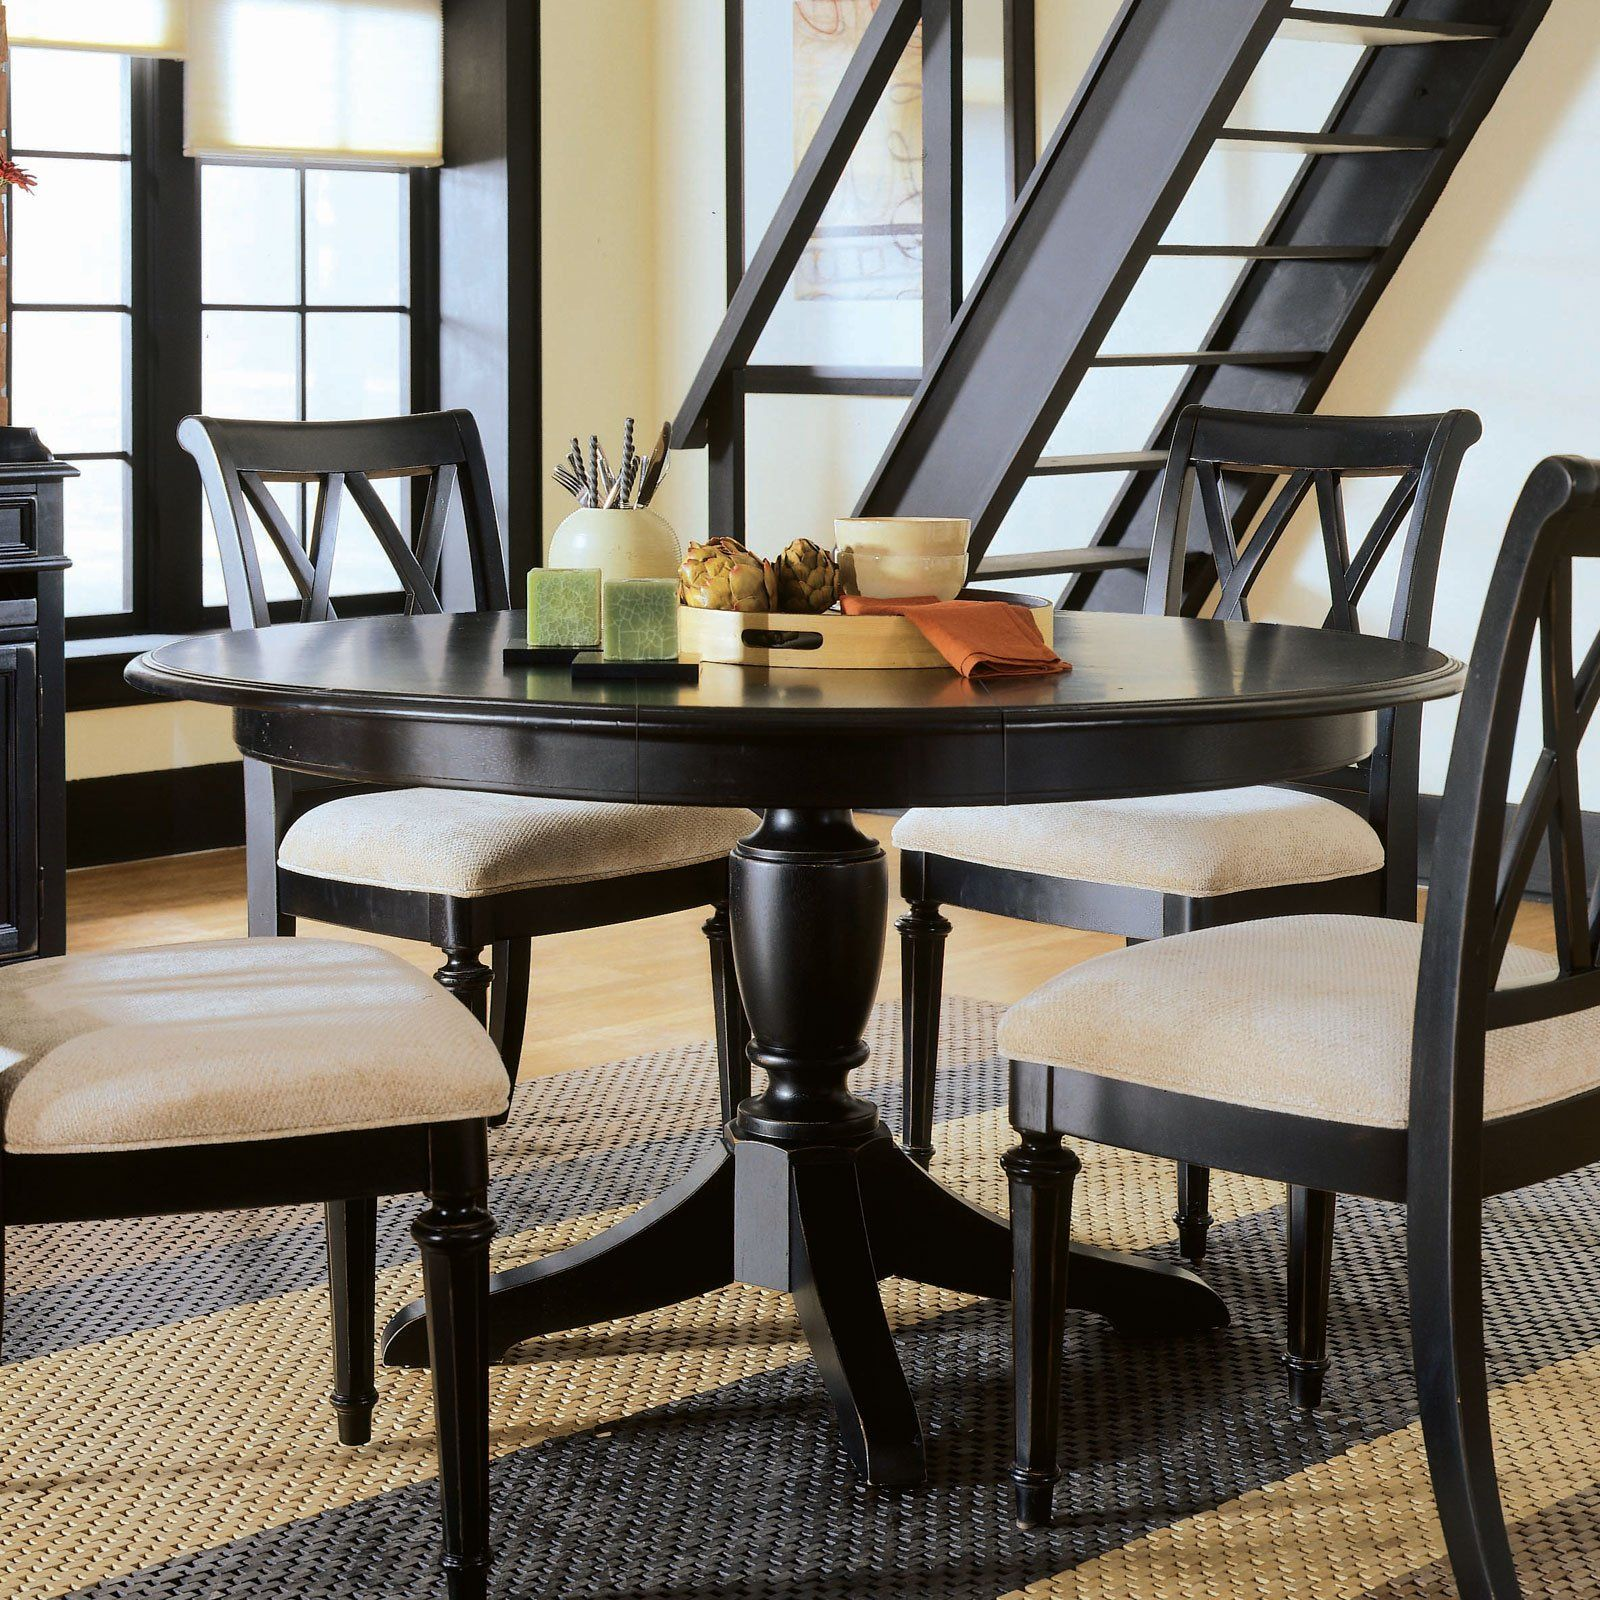 Round Dining Room Tables 1000 Images About I Love Round Dining Tables On Pinterest